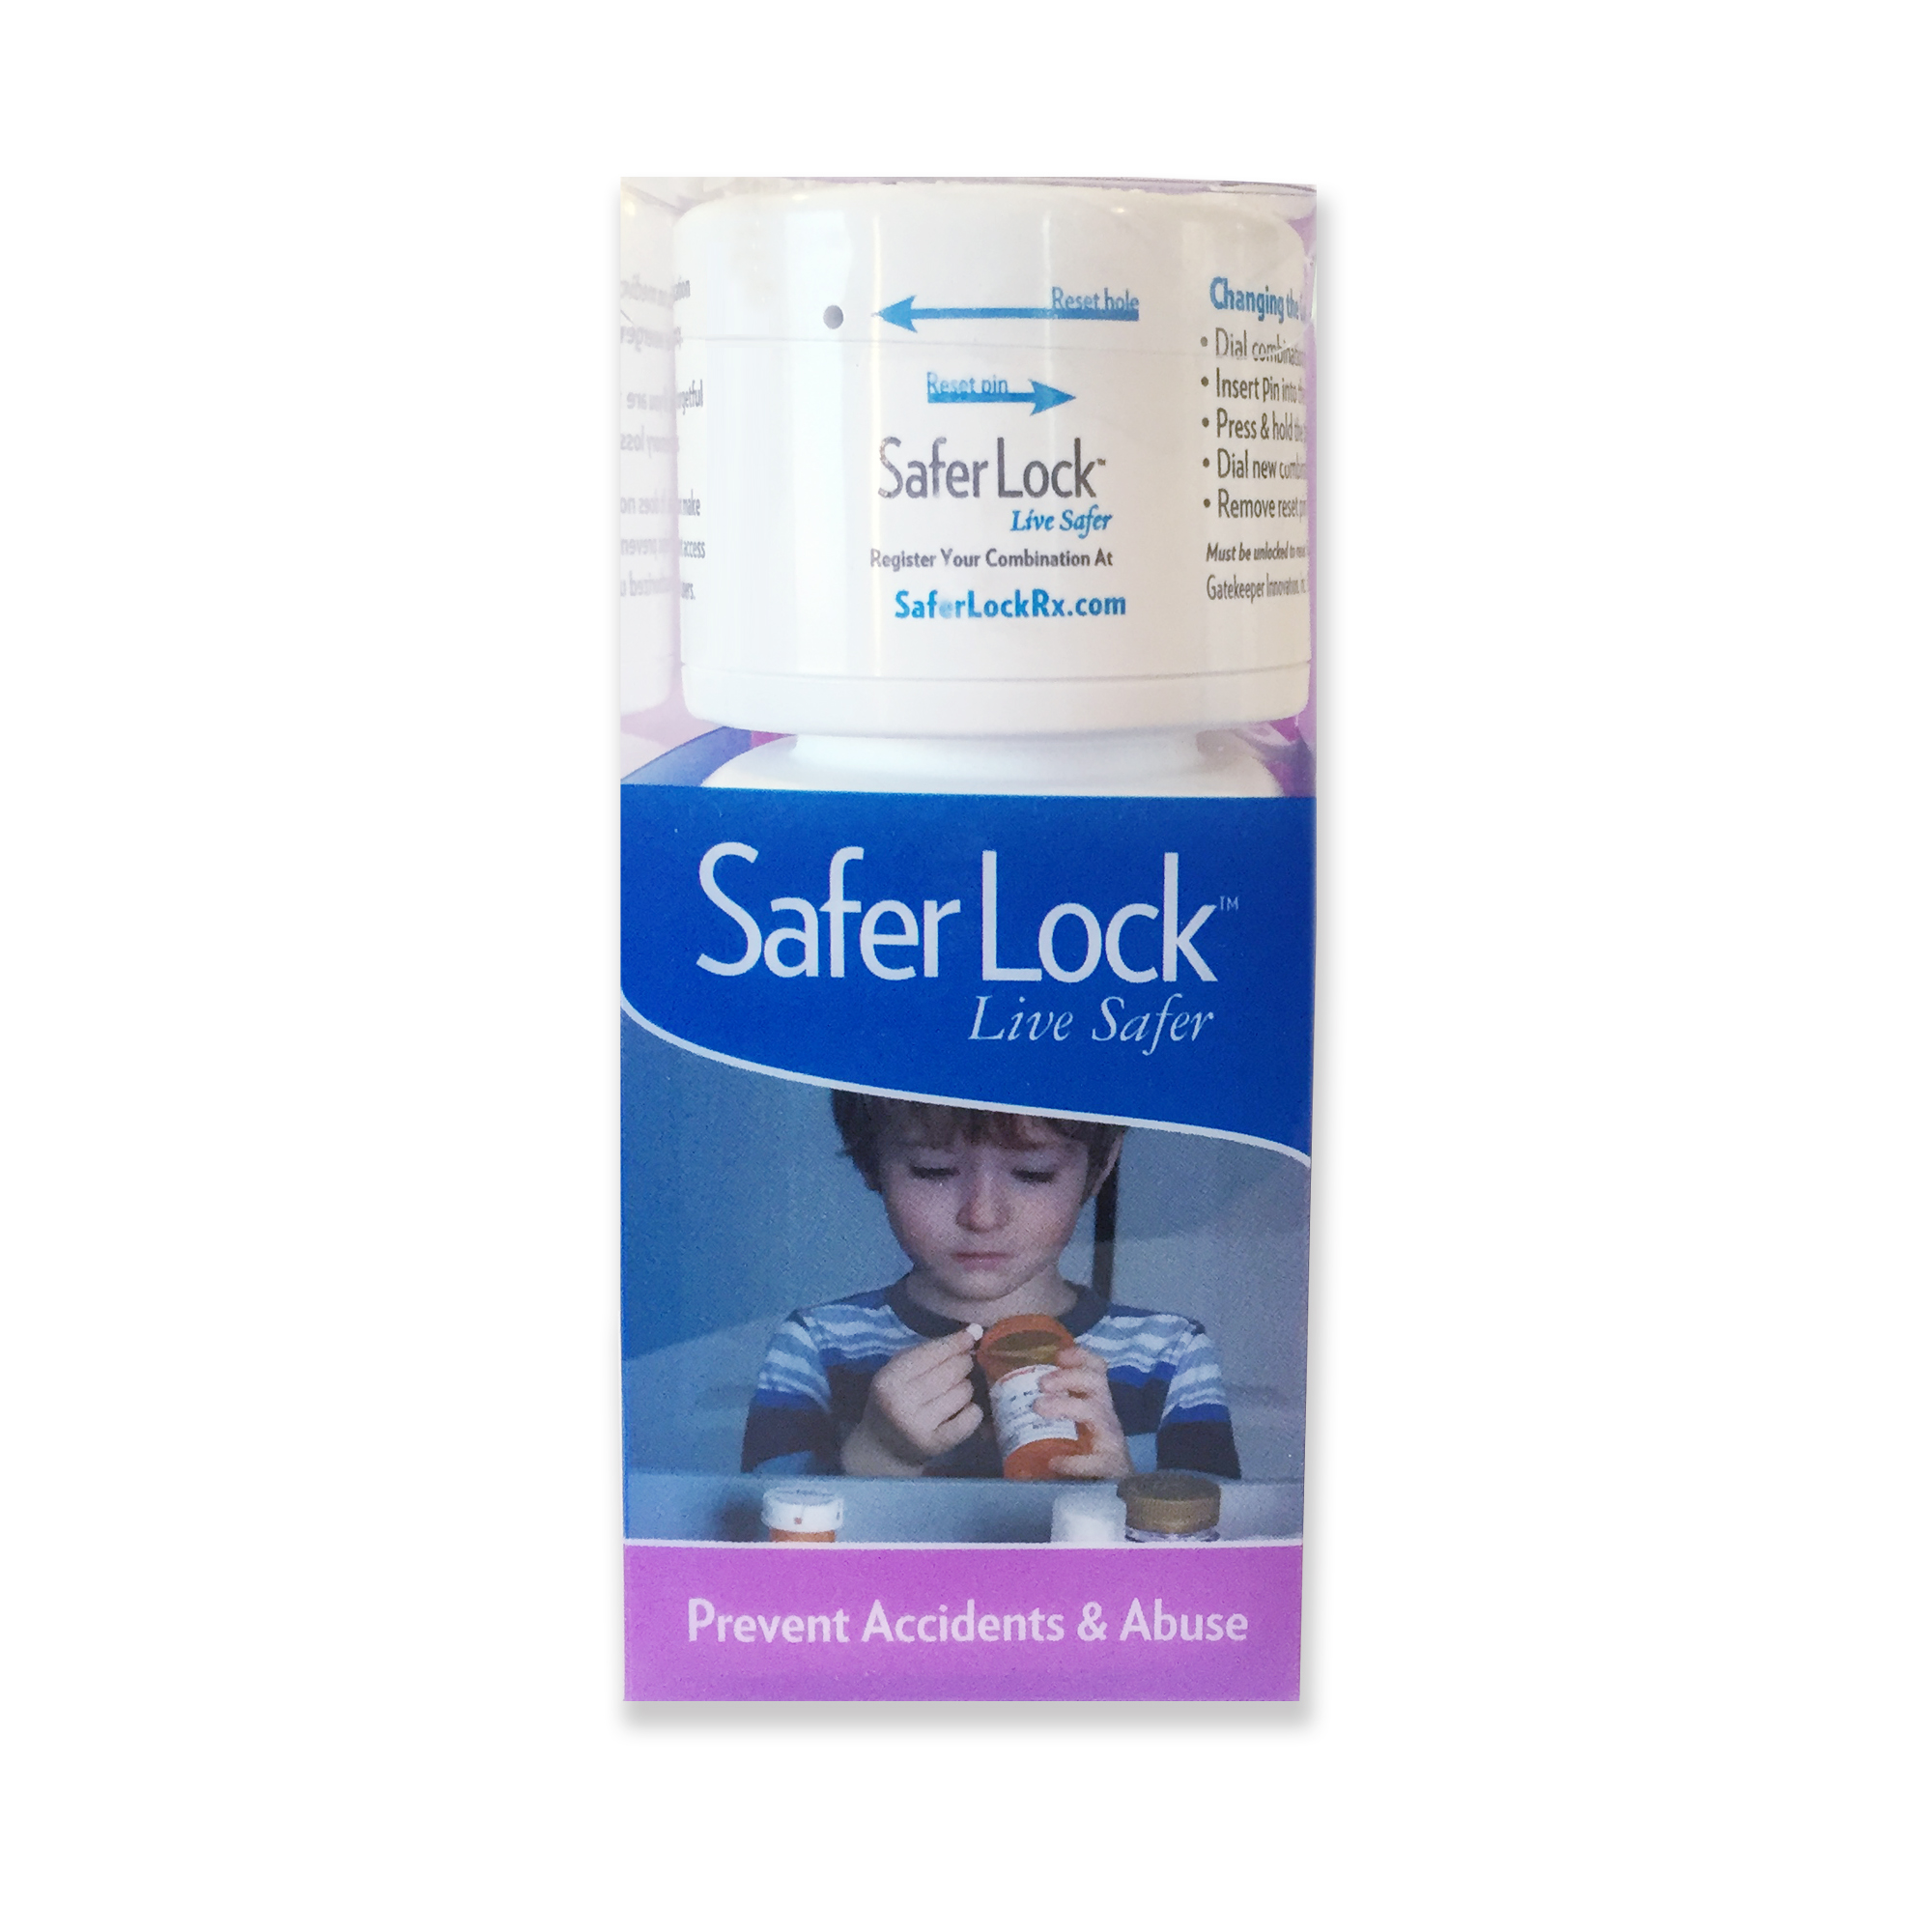 CEO of Gatekeeper Innovation, Inc., commends the California Safe Dispensing Act